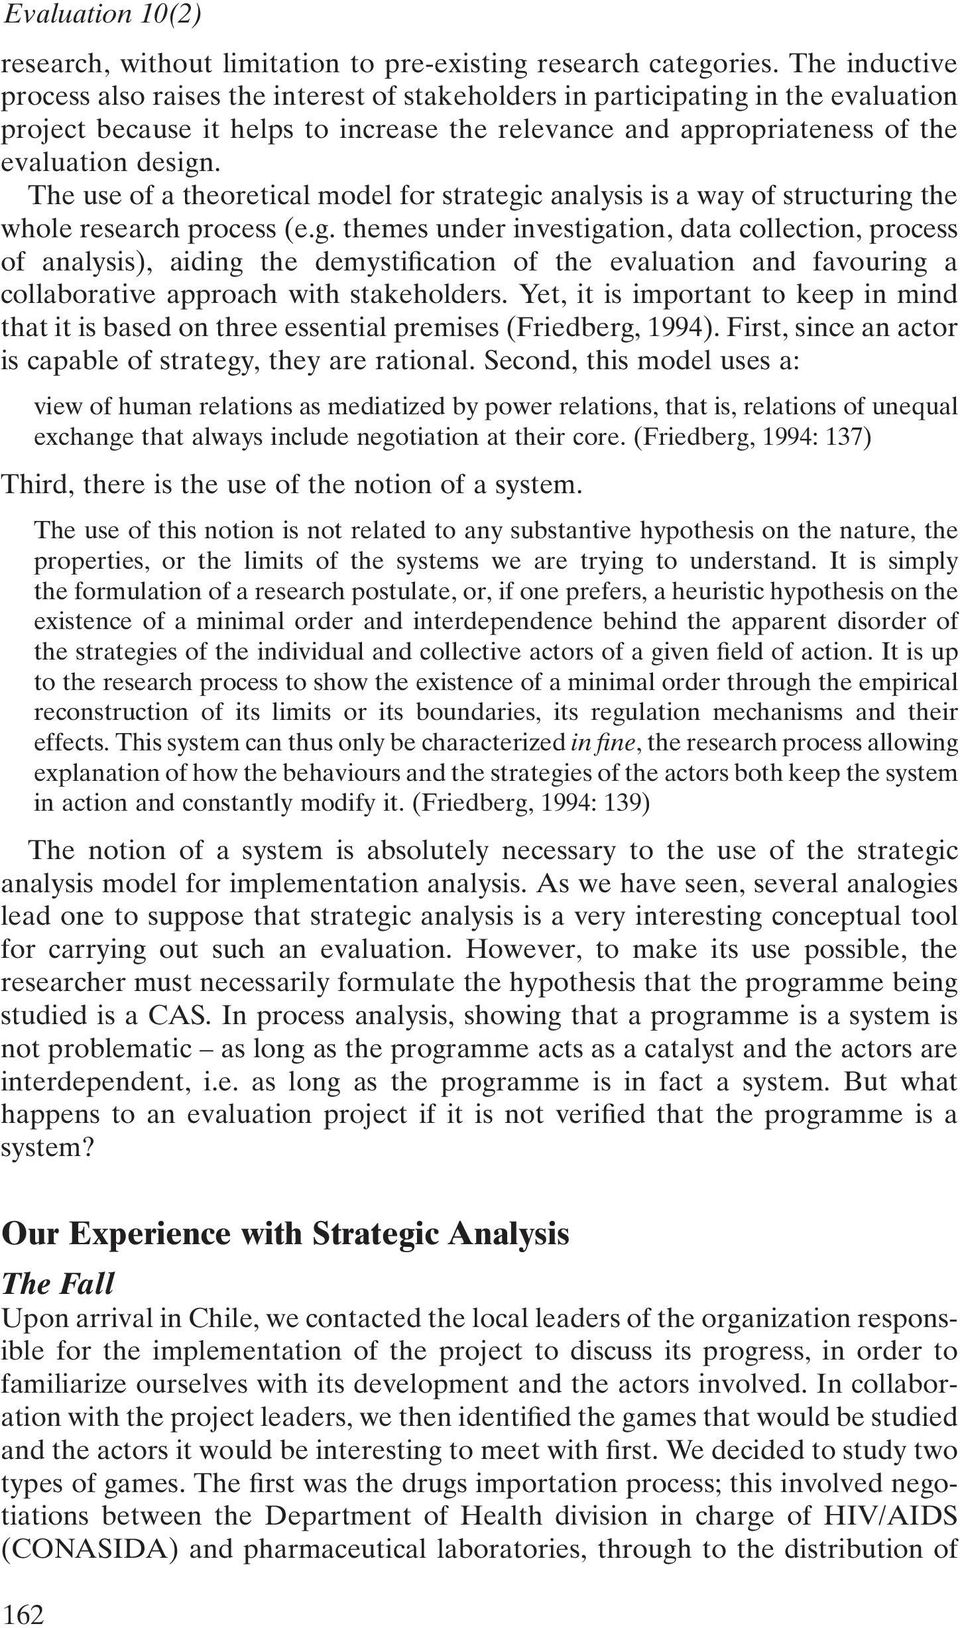 The use of a theoretical model for strategi